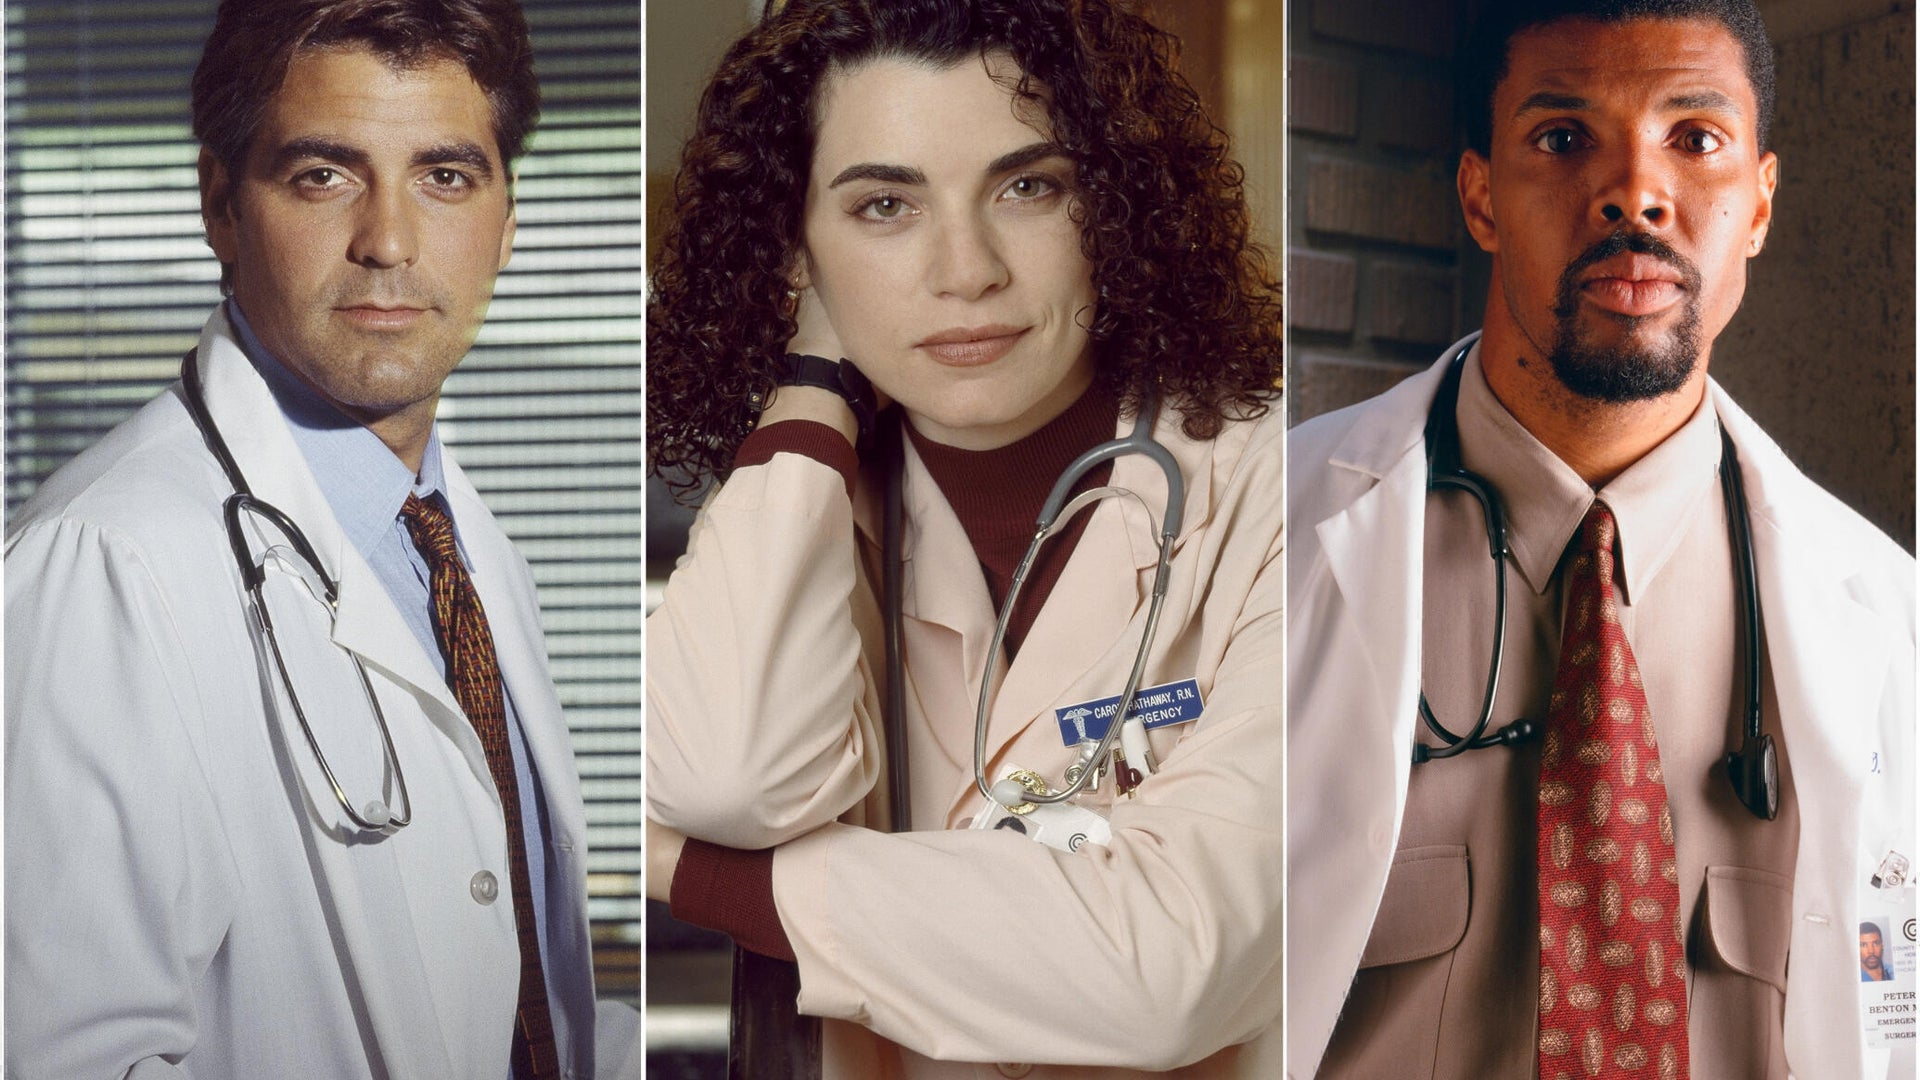 ER Cast Then and Now